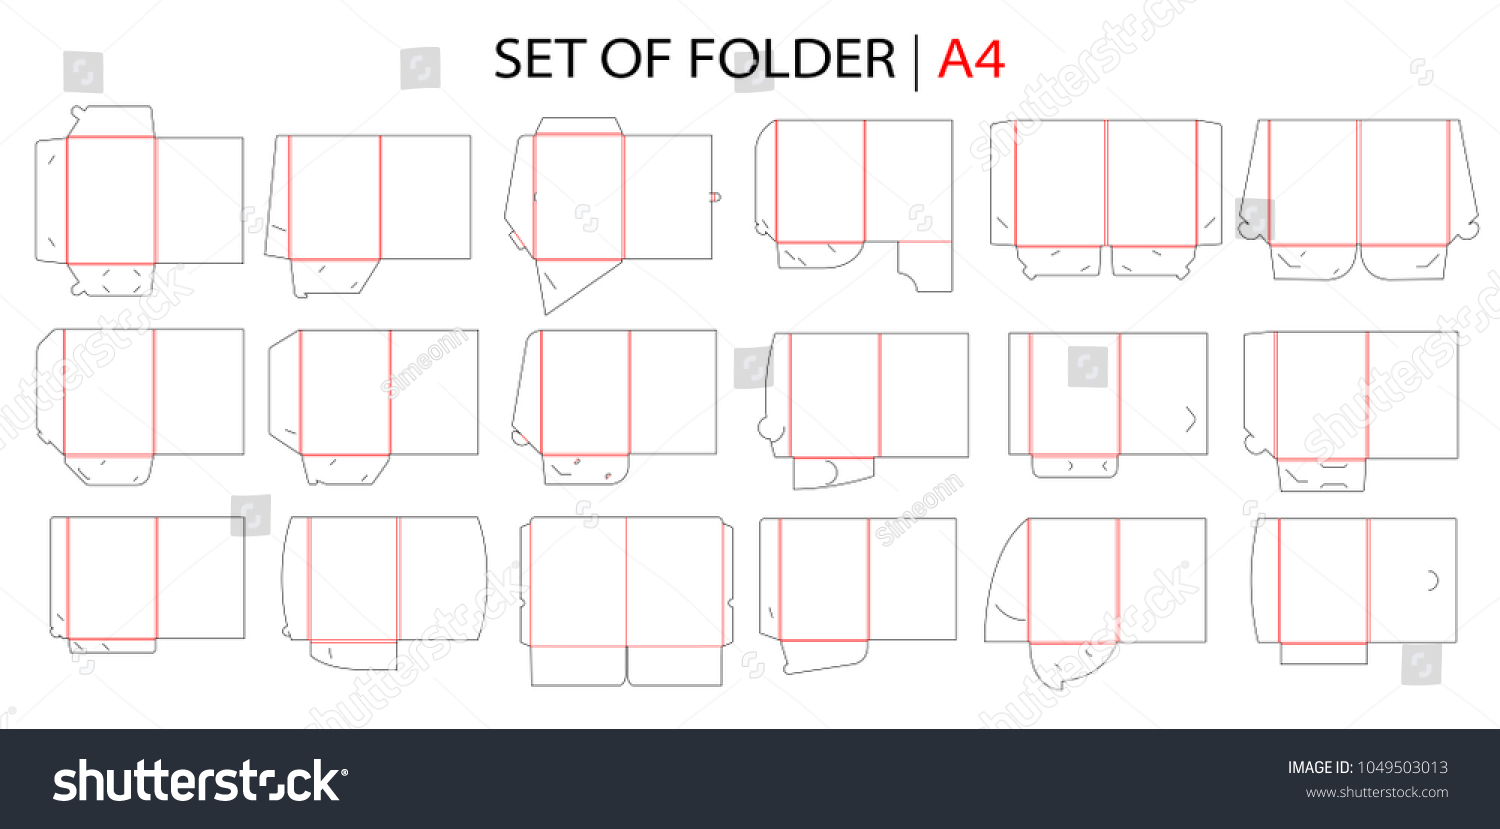 Folder set gusset die cut stamp em vetor stock 1049503013 shutterstock folder set with gusset die cut stamp empty shablon template for a4 documents and business reheart Choice Image